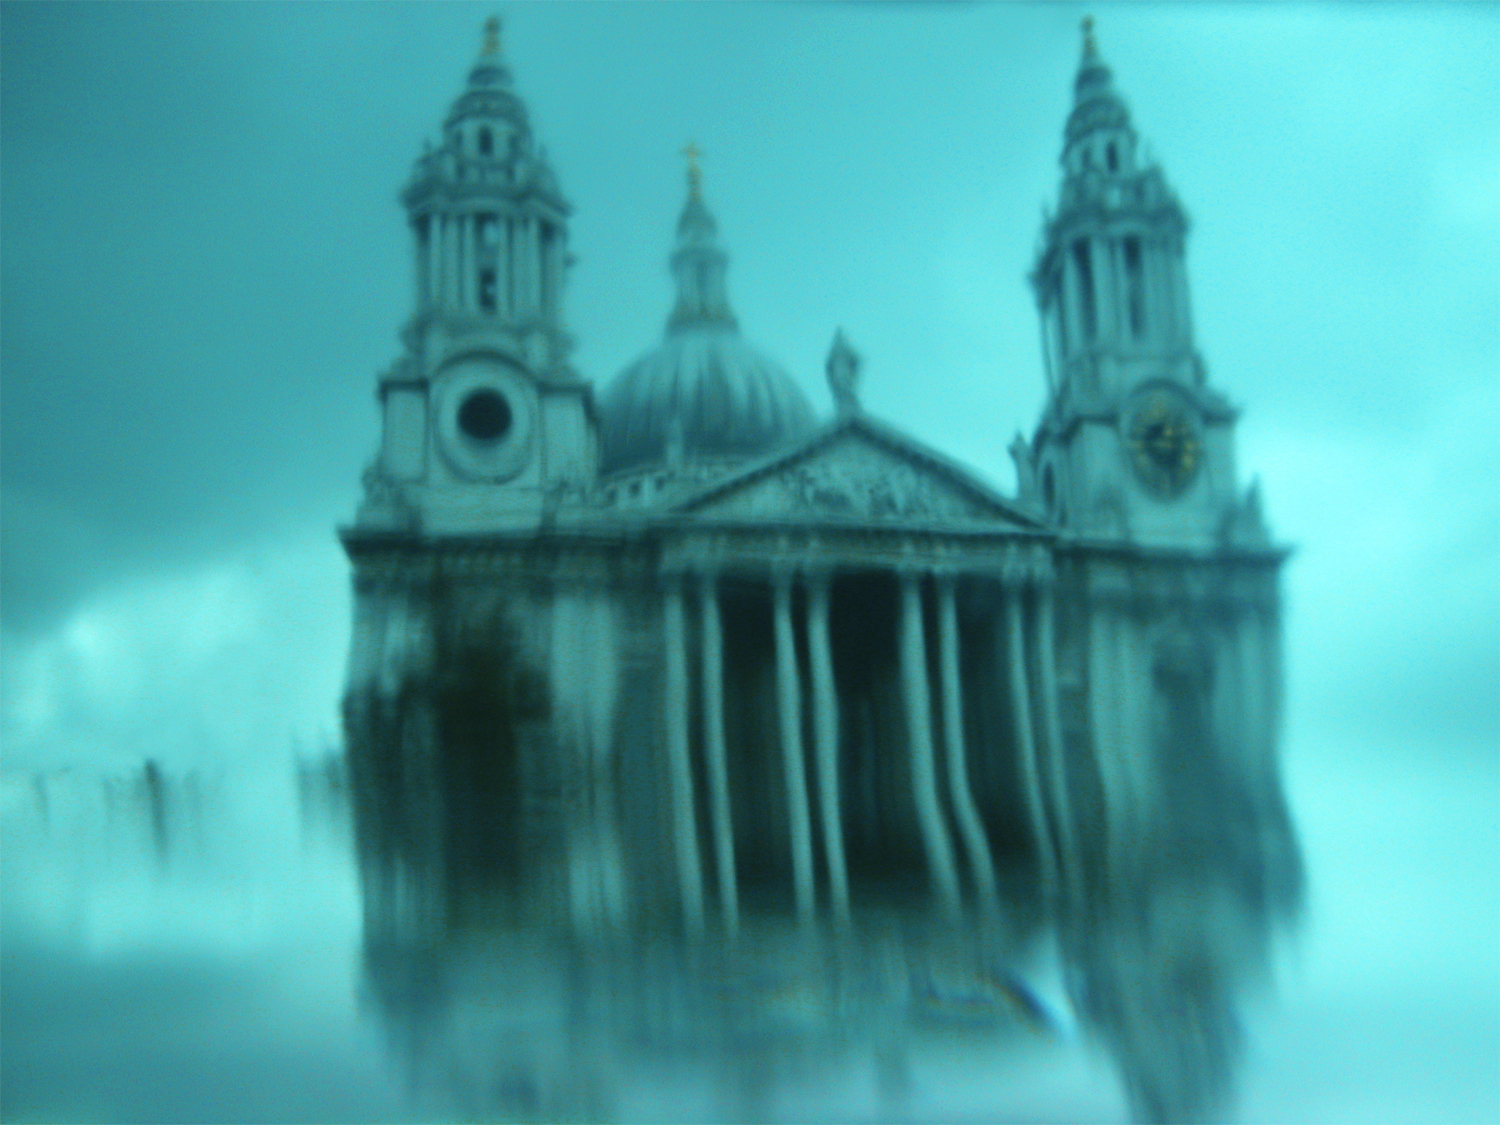 St. Paul's Cathedral - London, UK